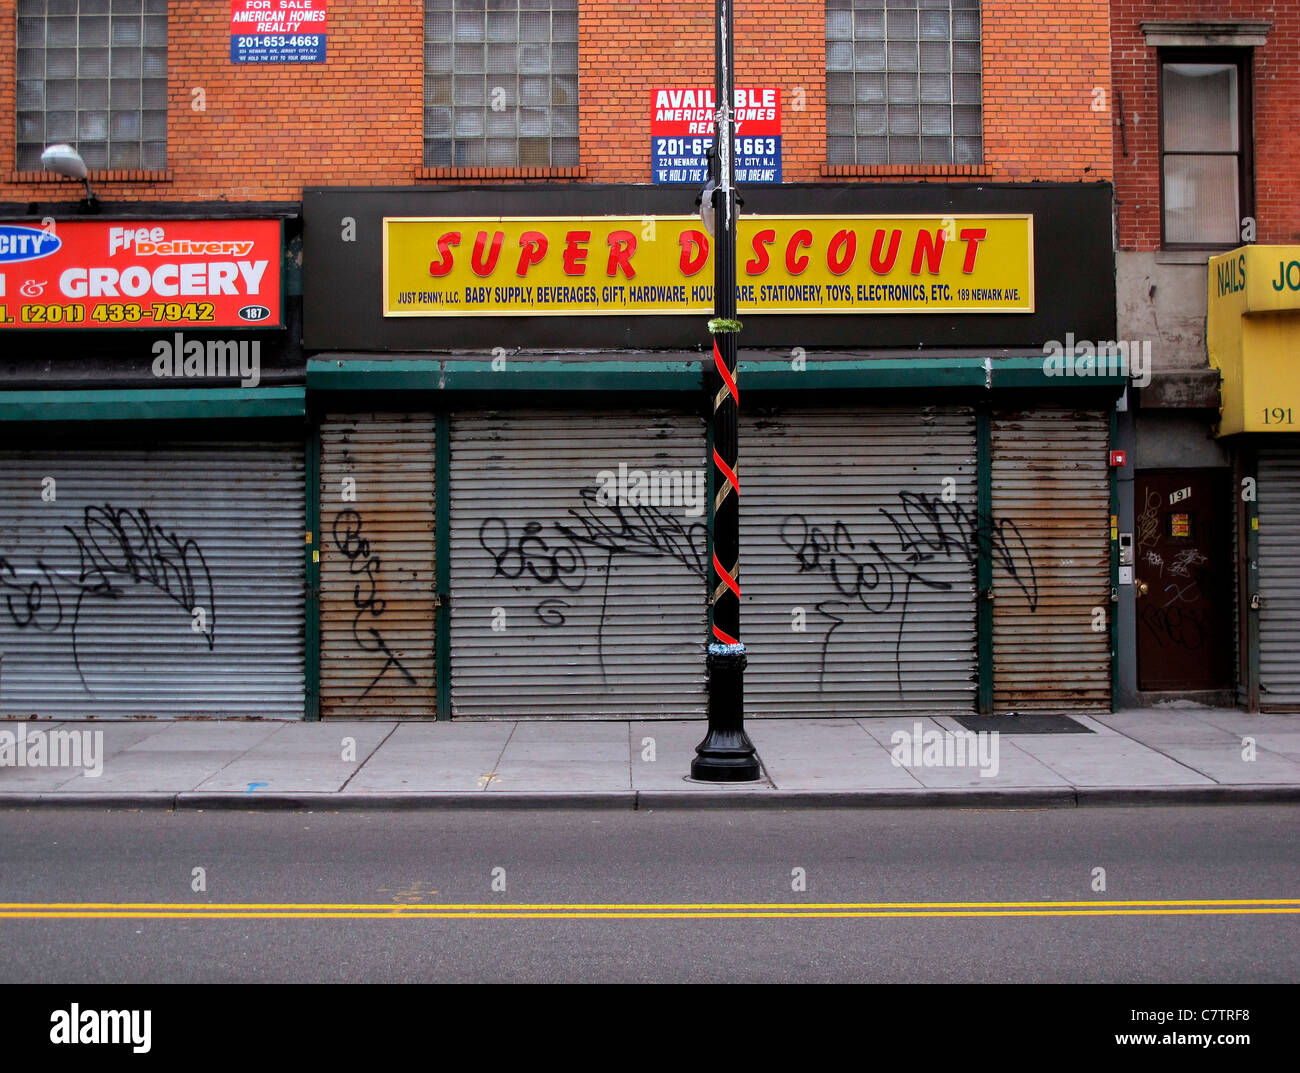 Super Discount Store on Newark St. - Stock Image